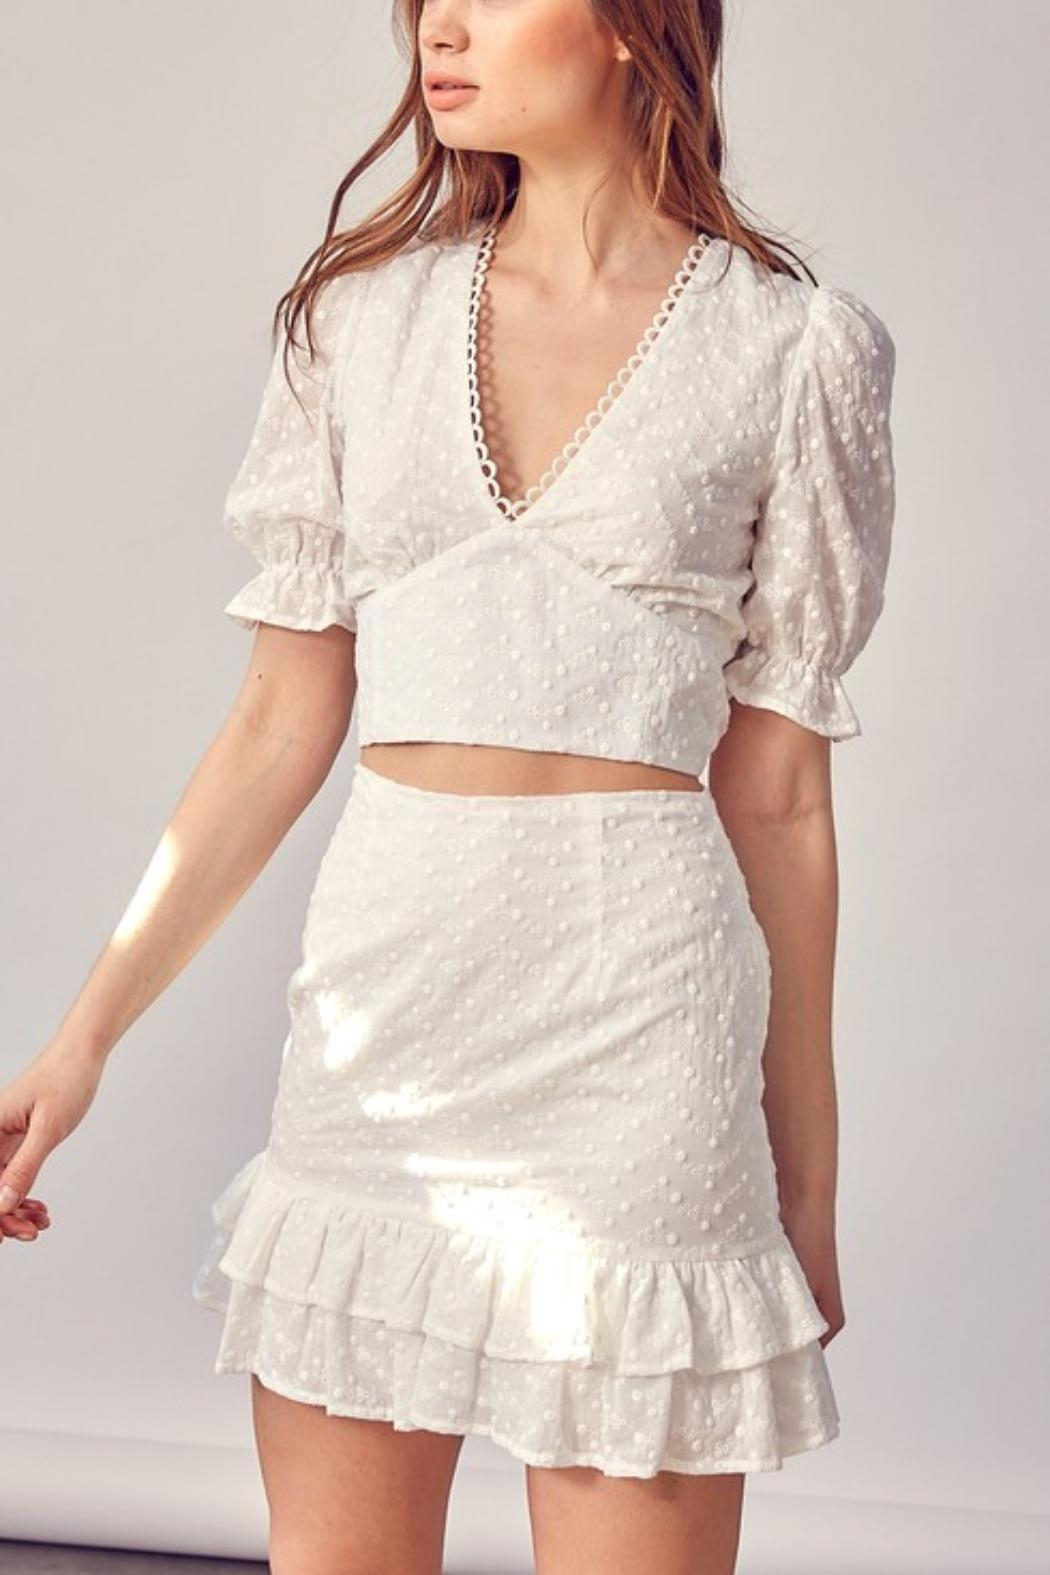 Pretty Little Things Layered Lace Skirt - Main Image